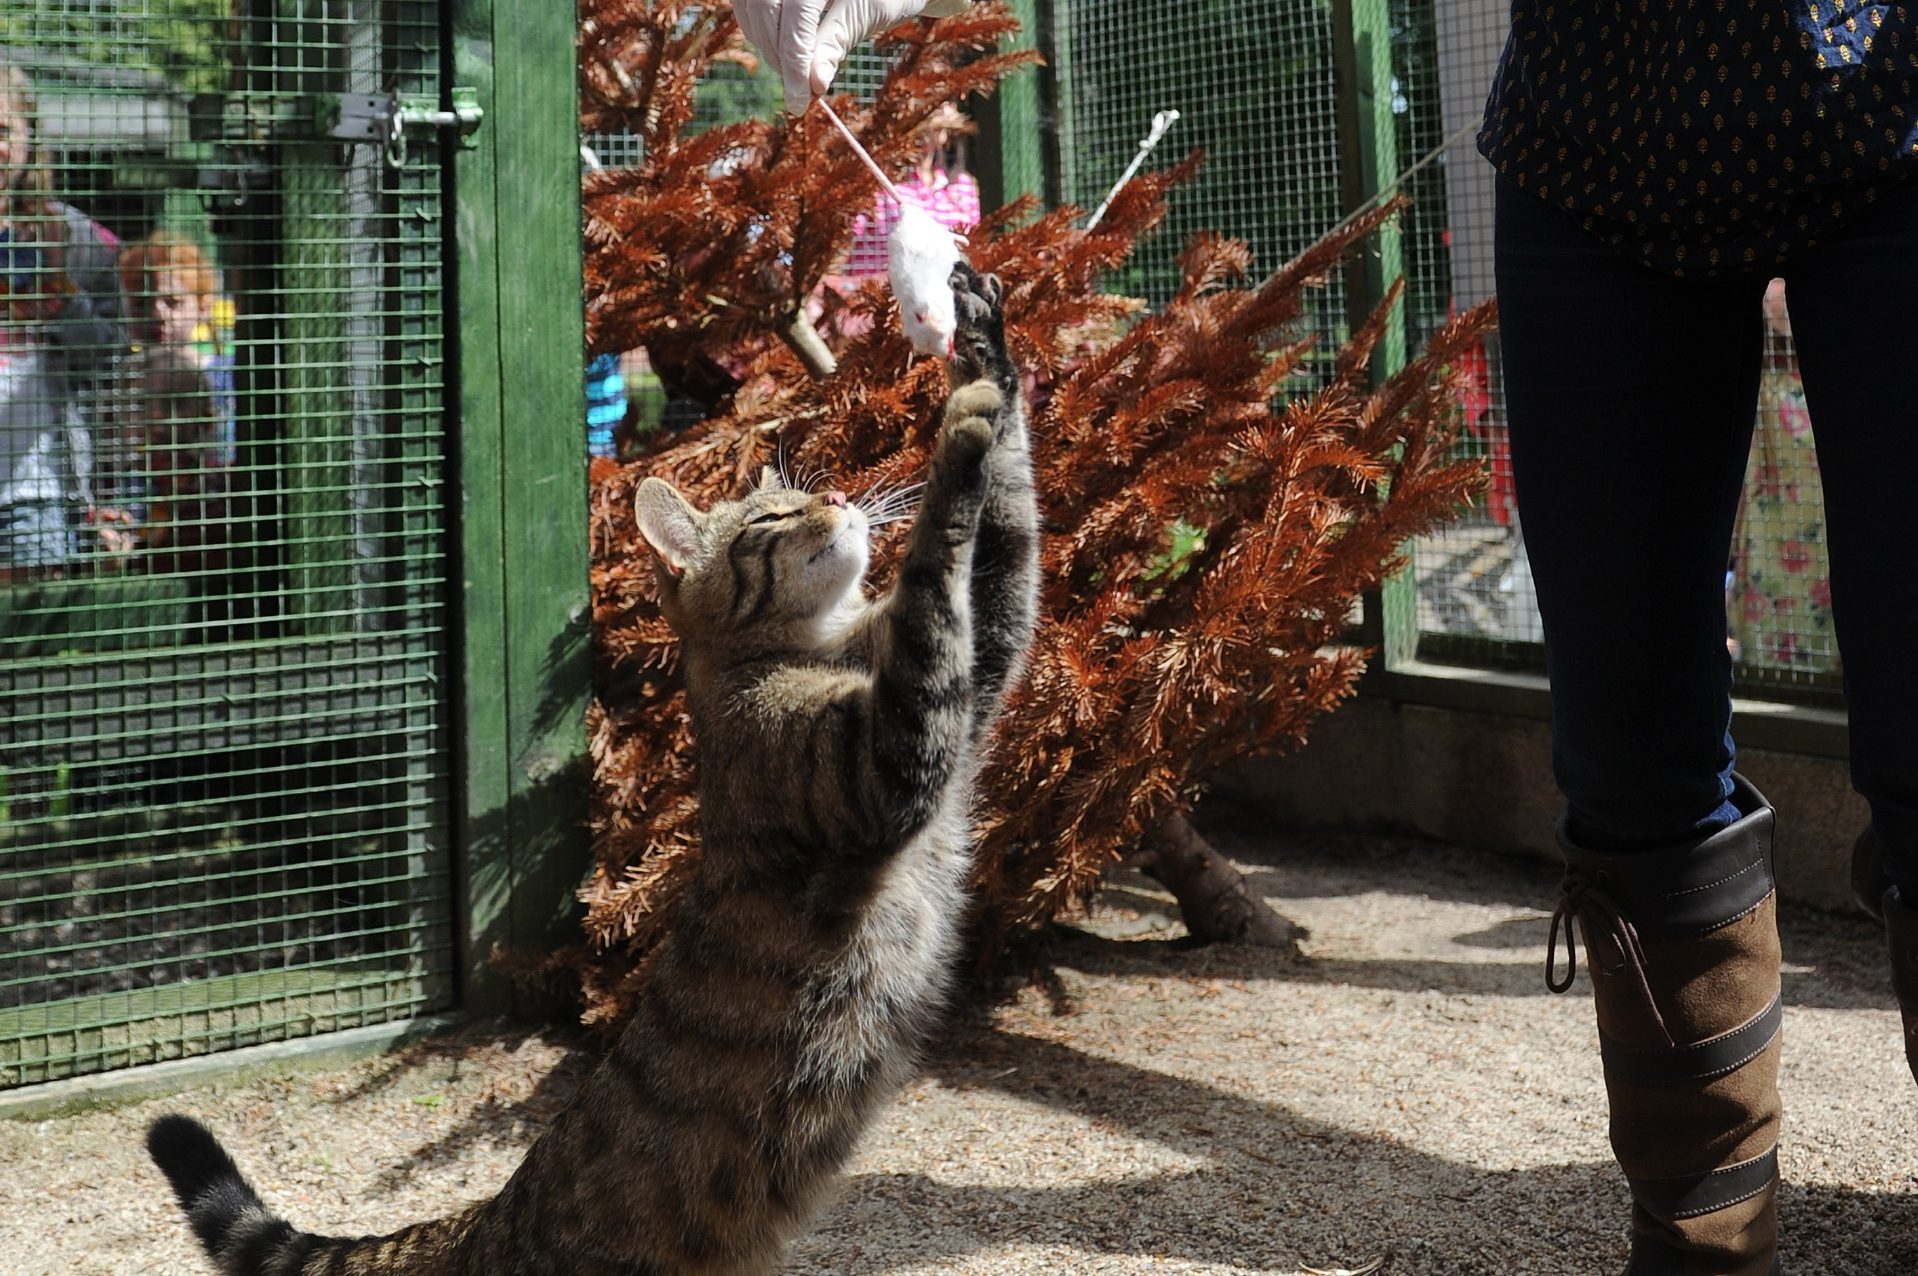 Scottish wildcat feeding time at Camperdown Zoo, Dundee